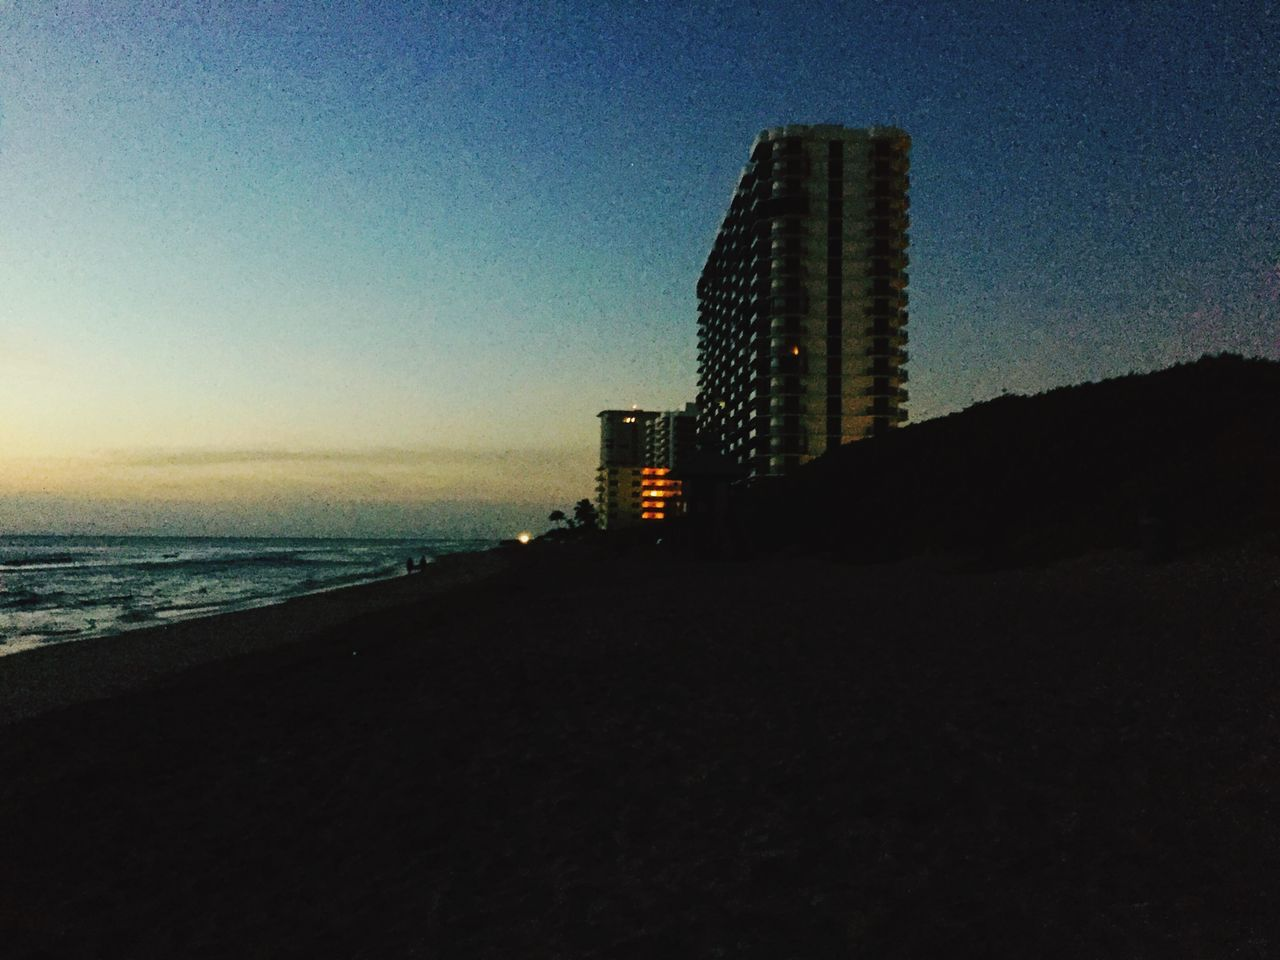 architecture, built structure, sea, sky, building exterior, skyscraper, beach, no people, clear sky, outdoors, nature, modern, city, night, water, beauty in nature